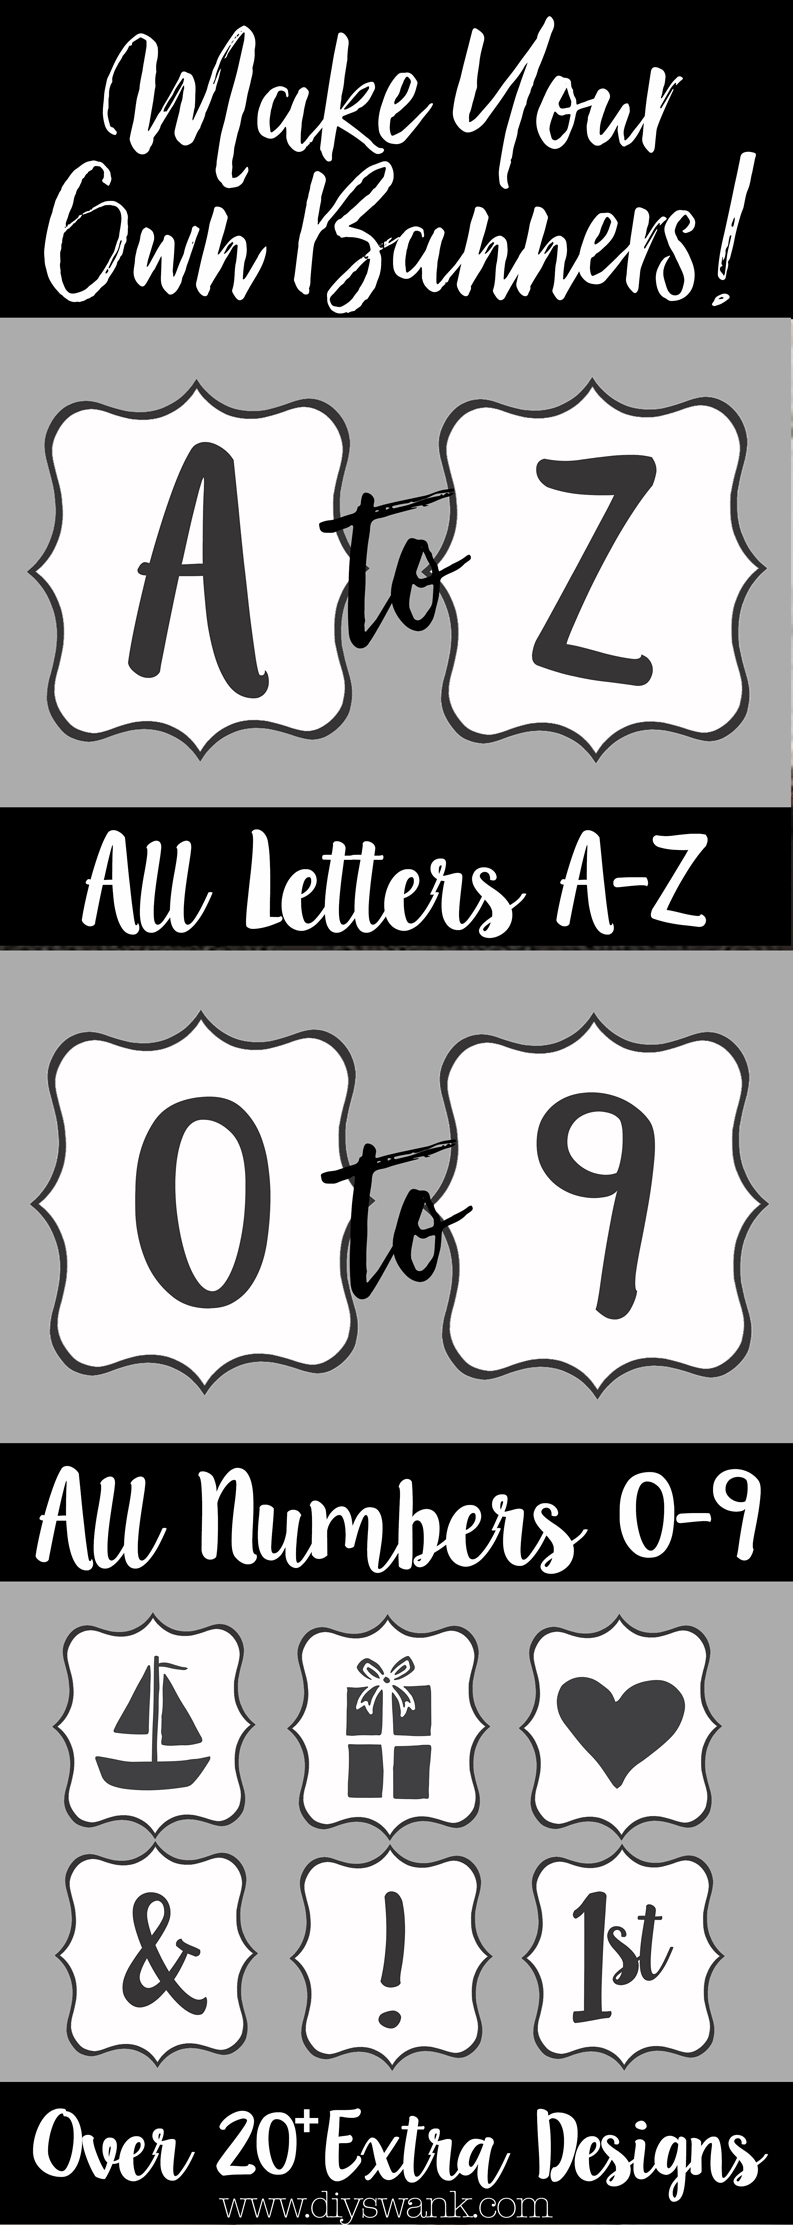 Free Printable Letters For Banners | Party Ideas | Pinterest - Free Printable Letters Az